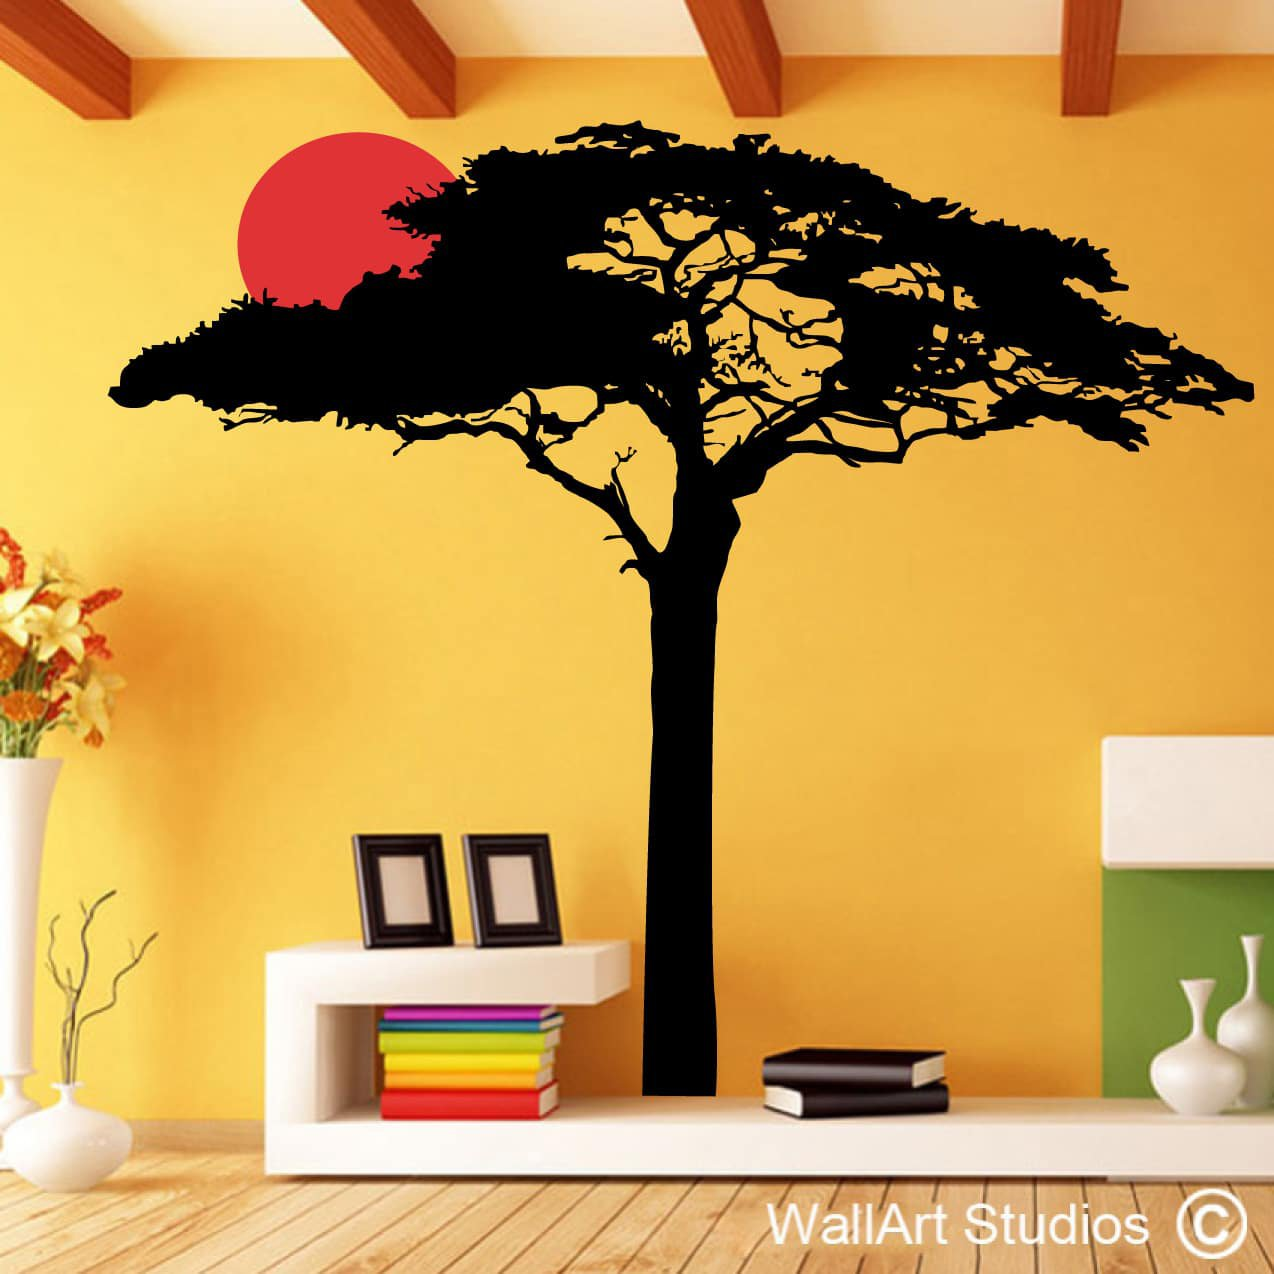 Trees Wall Art Decals | Wall Art in South Africa | WallArt Studios